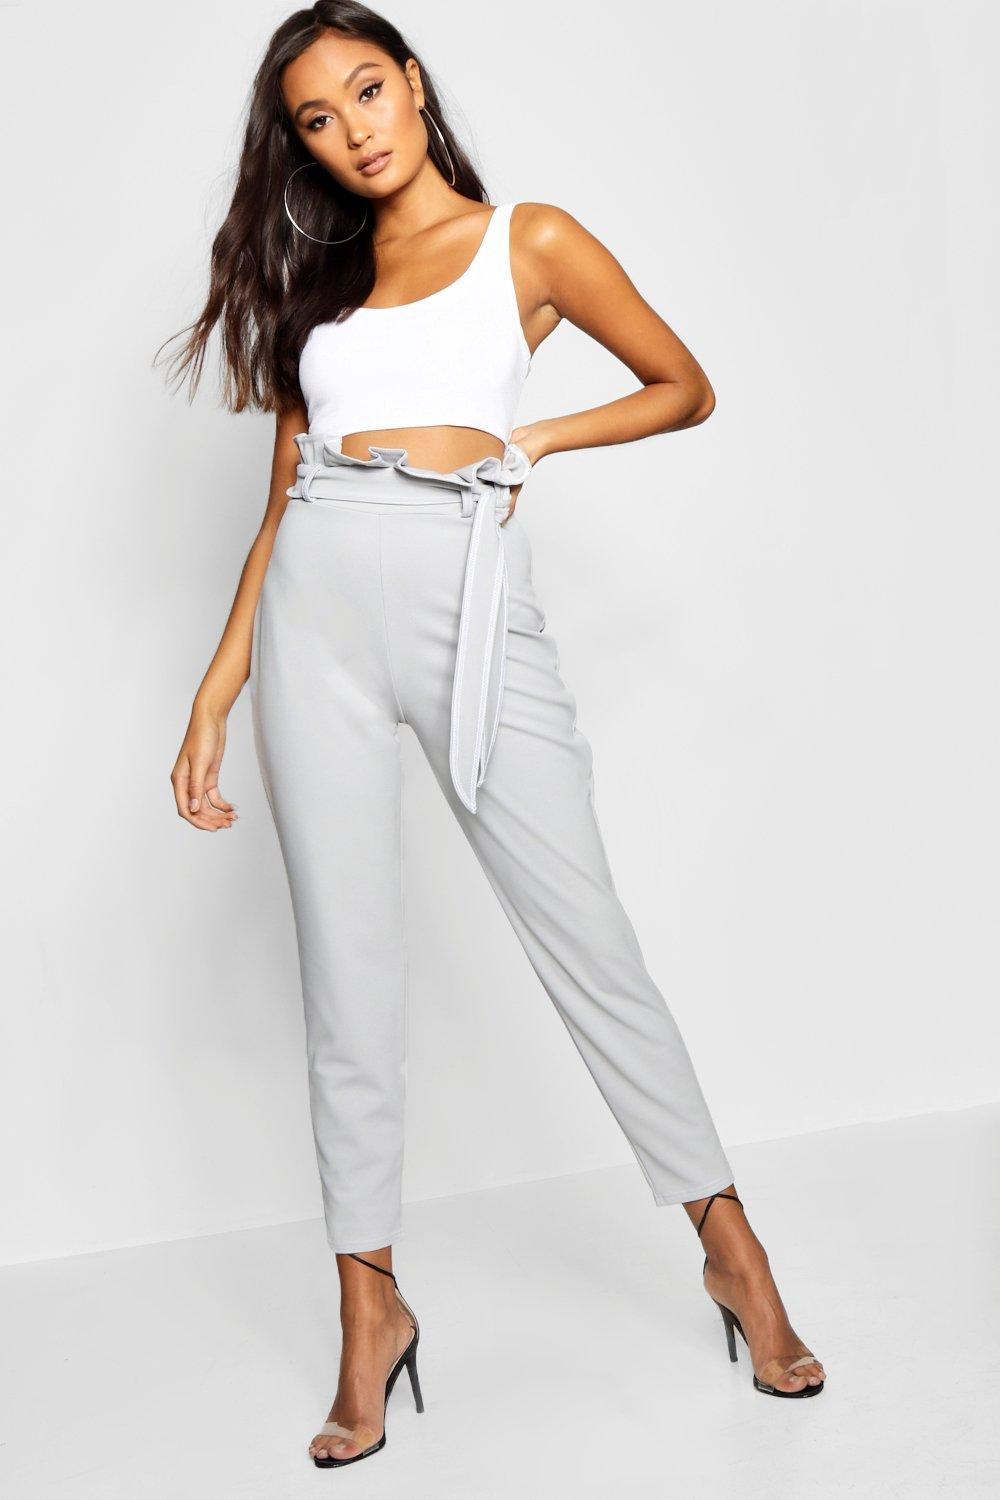 Stitch Trouser Contrast Skinny grey Paperbag ZdHqwp